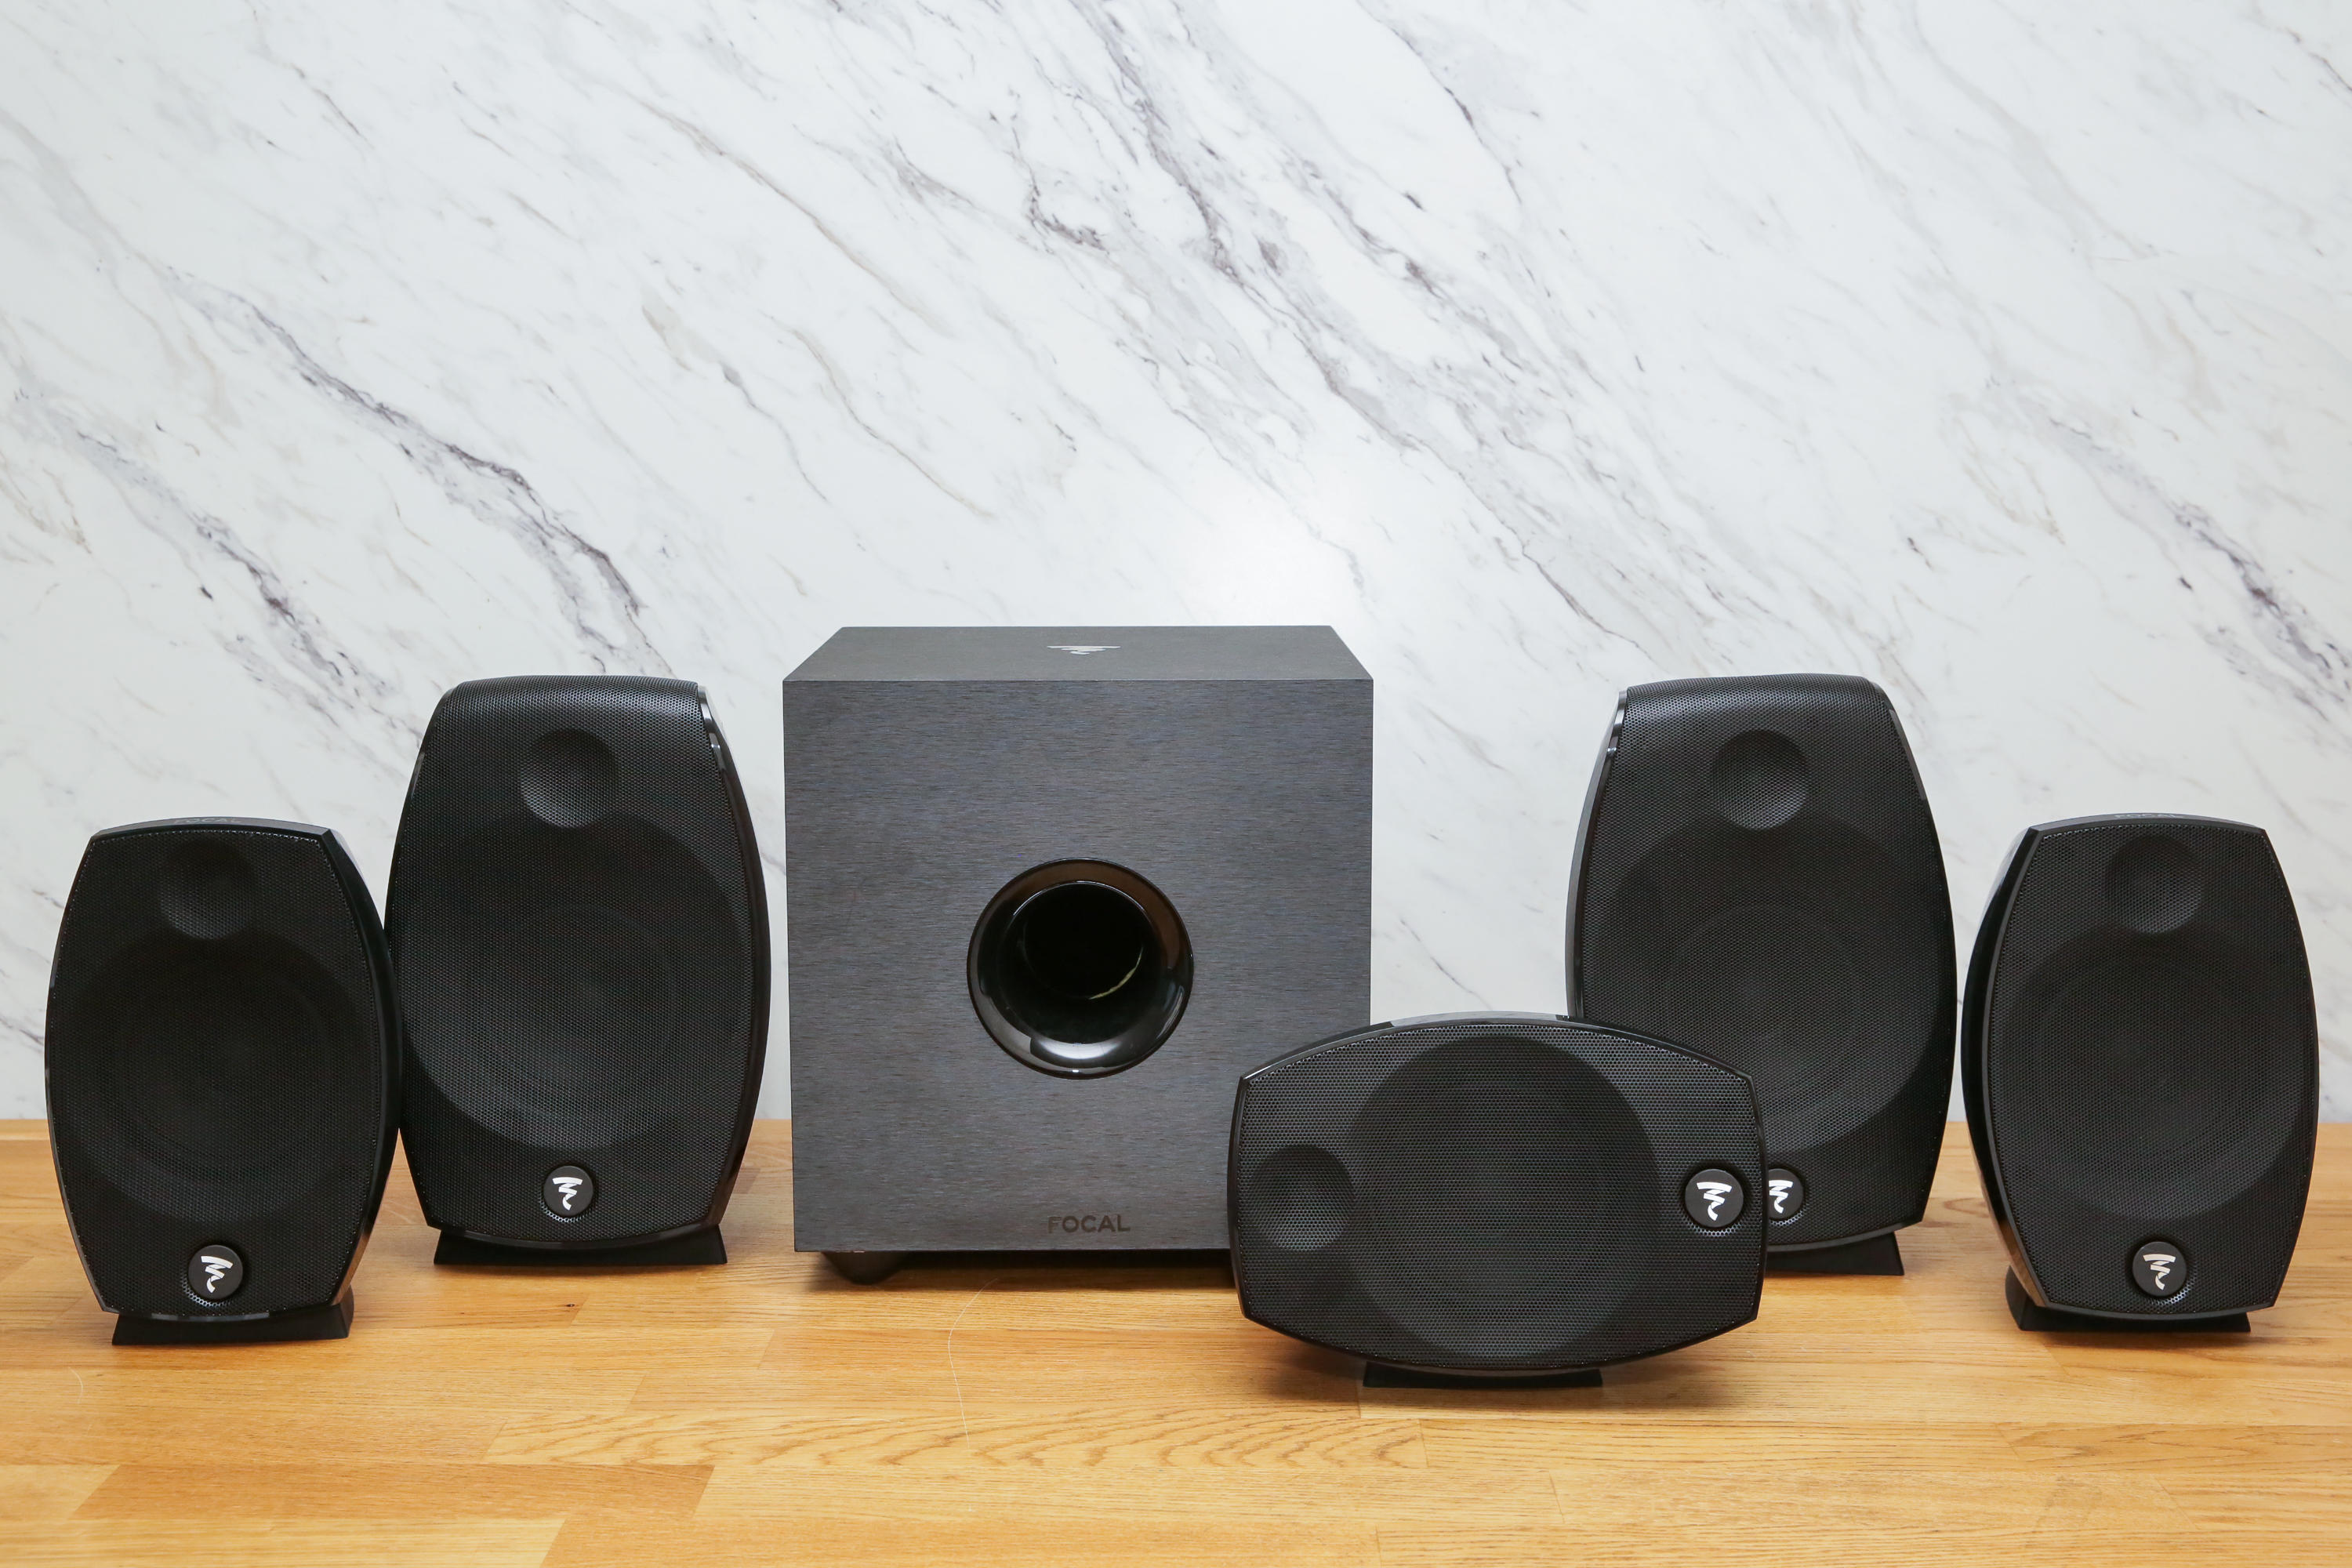 Focal Sib Evo 5.1.2 Atmos speakers